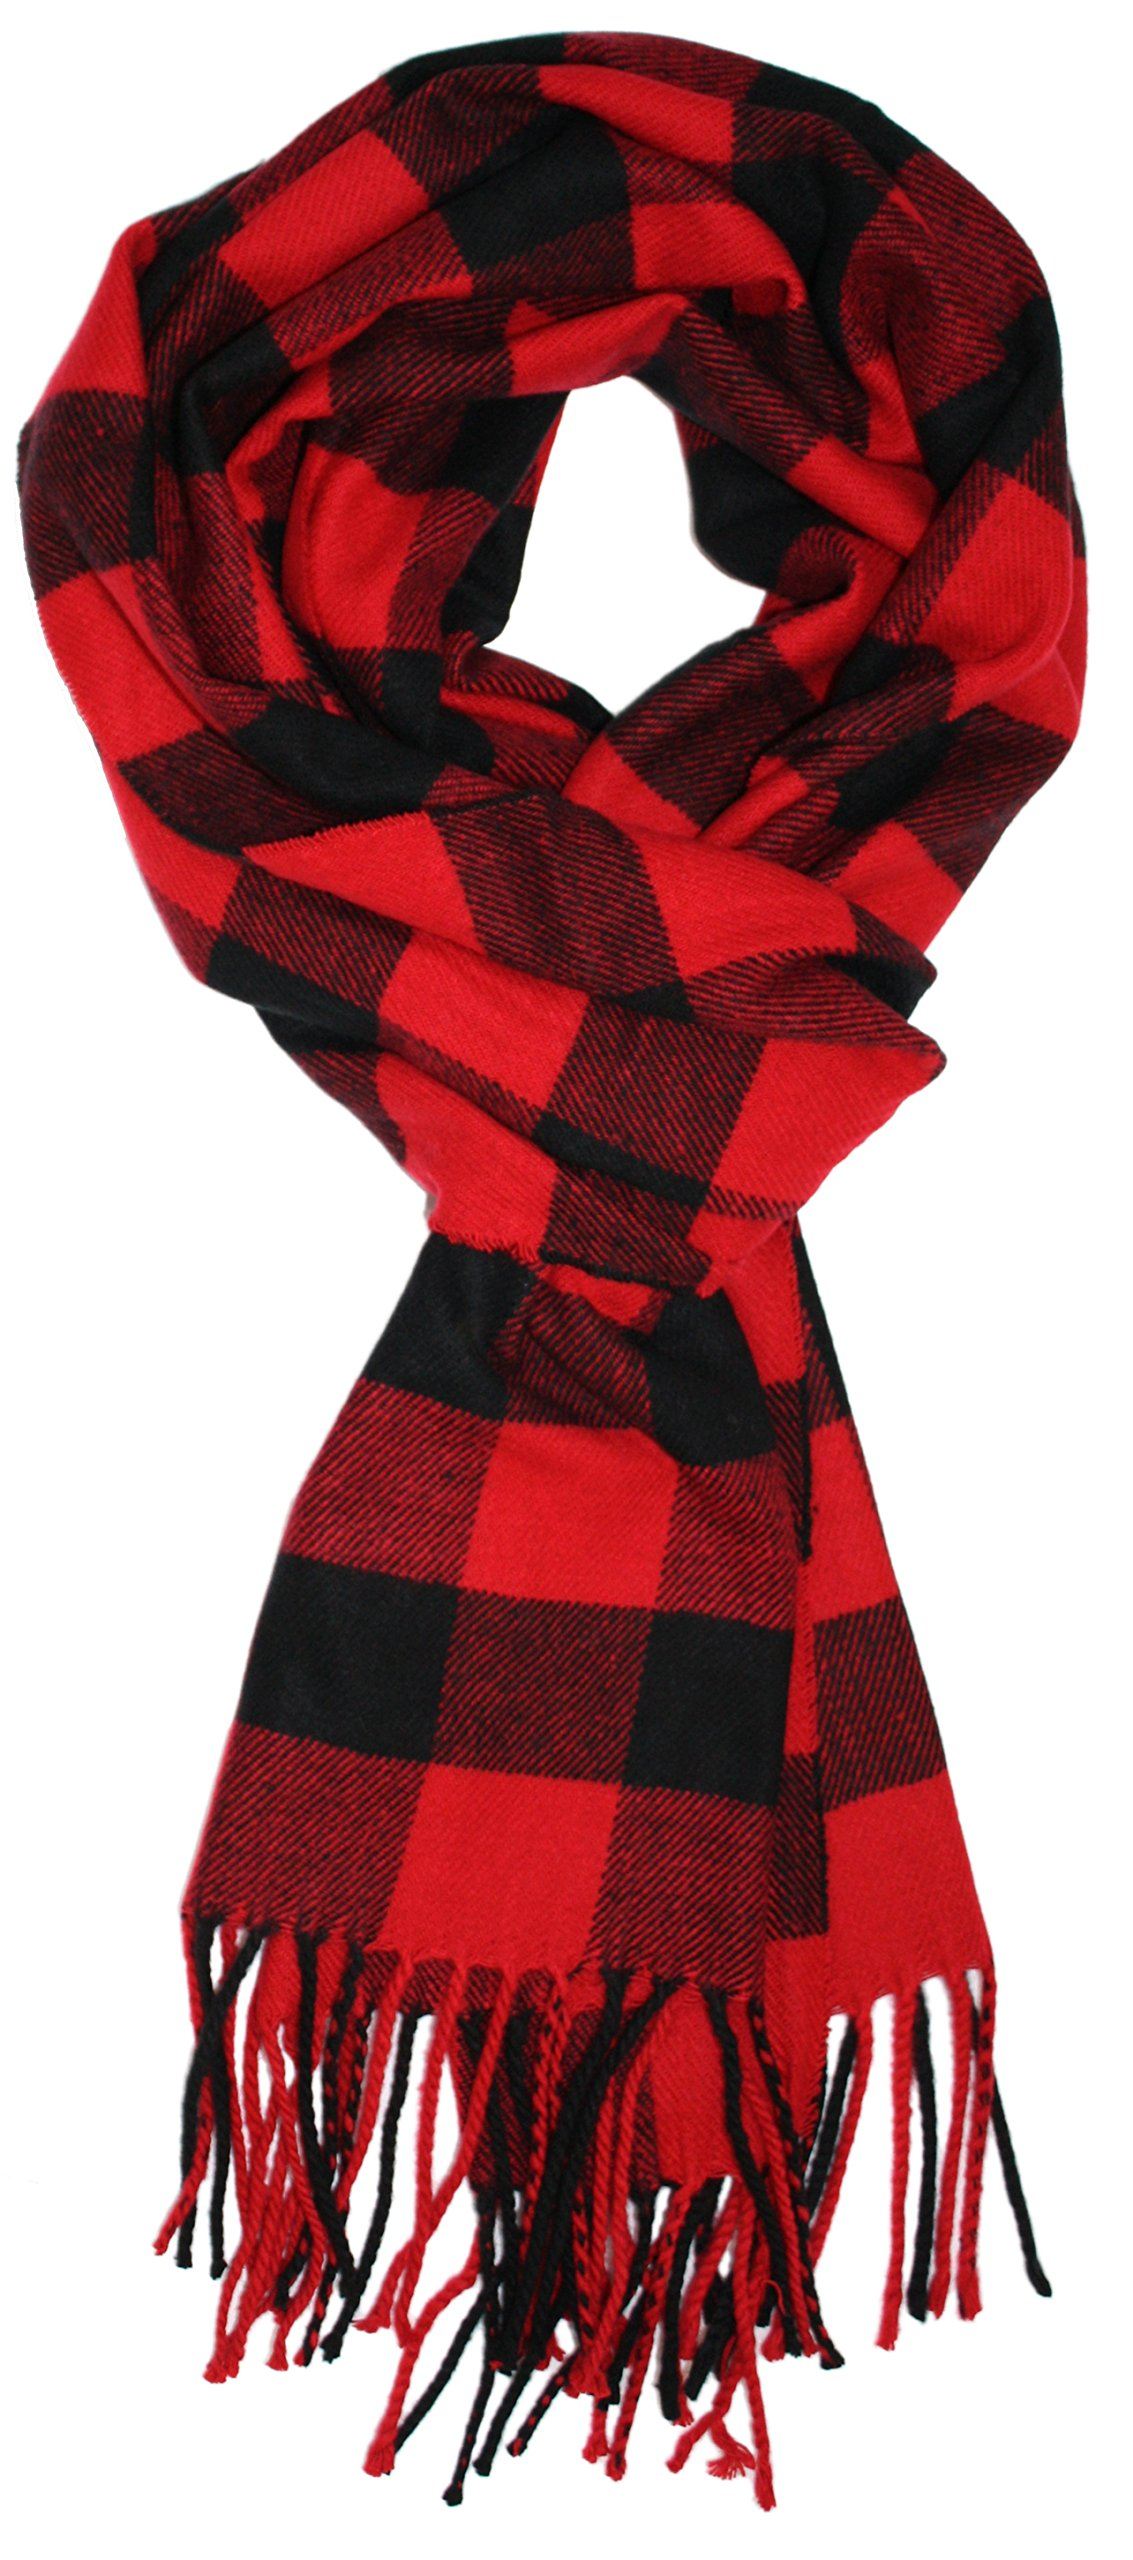 Ted and Jack - Jack's Classic Cashmere Feel Buffalo Check Scarf in Black and Red